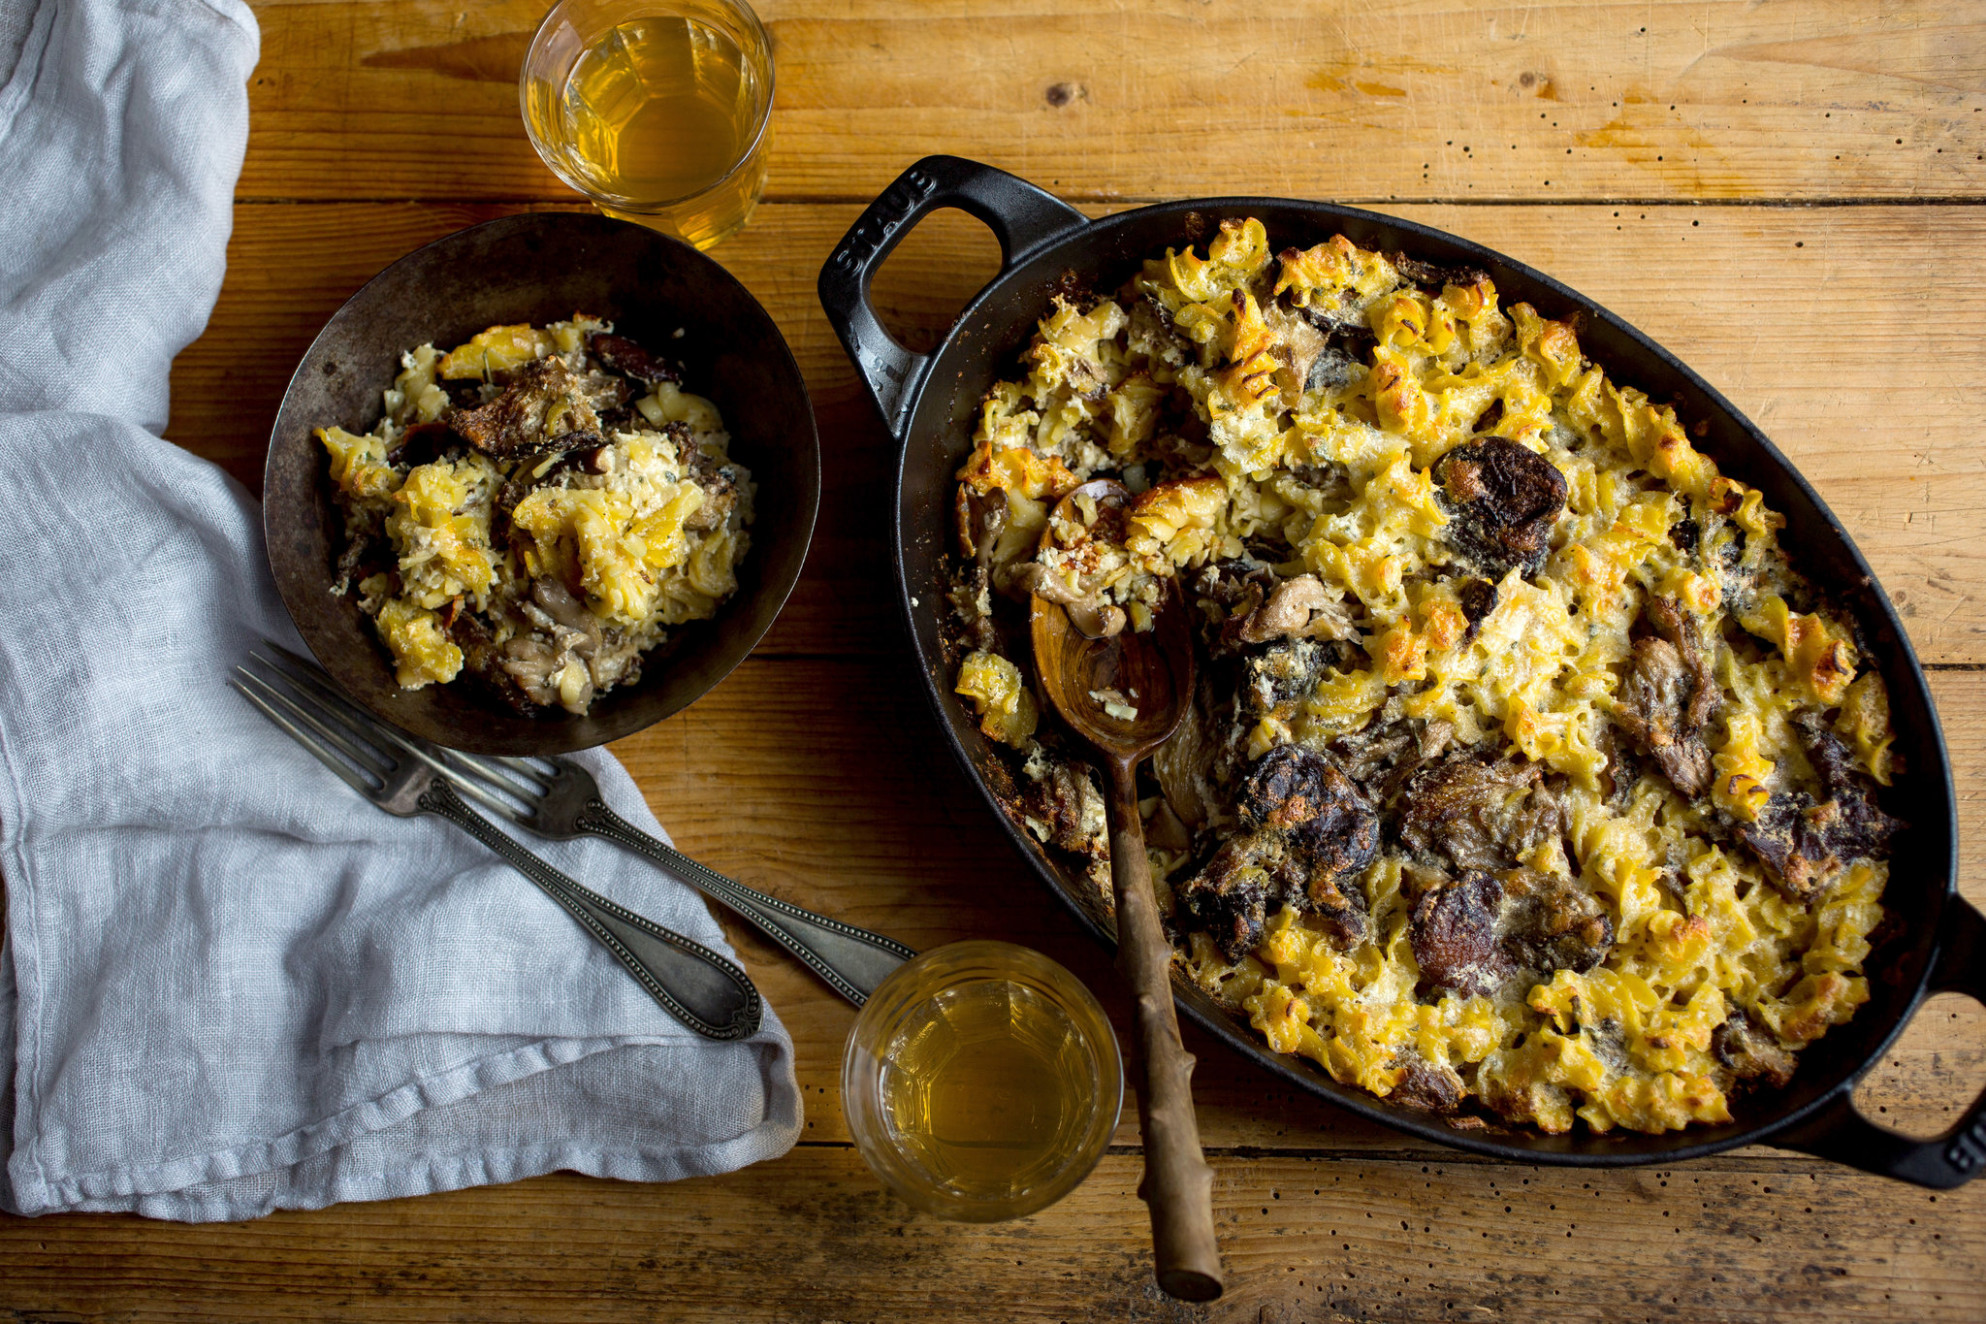 Baked Cheesy Pasta Casserole With Wild Mushrooms Recipe …